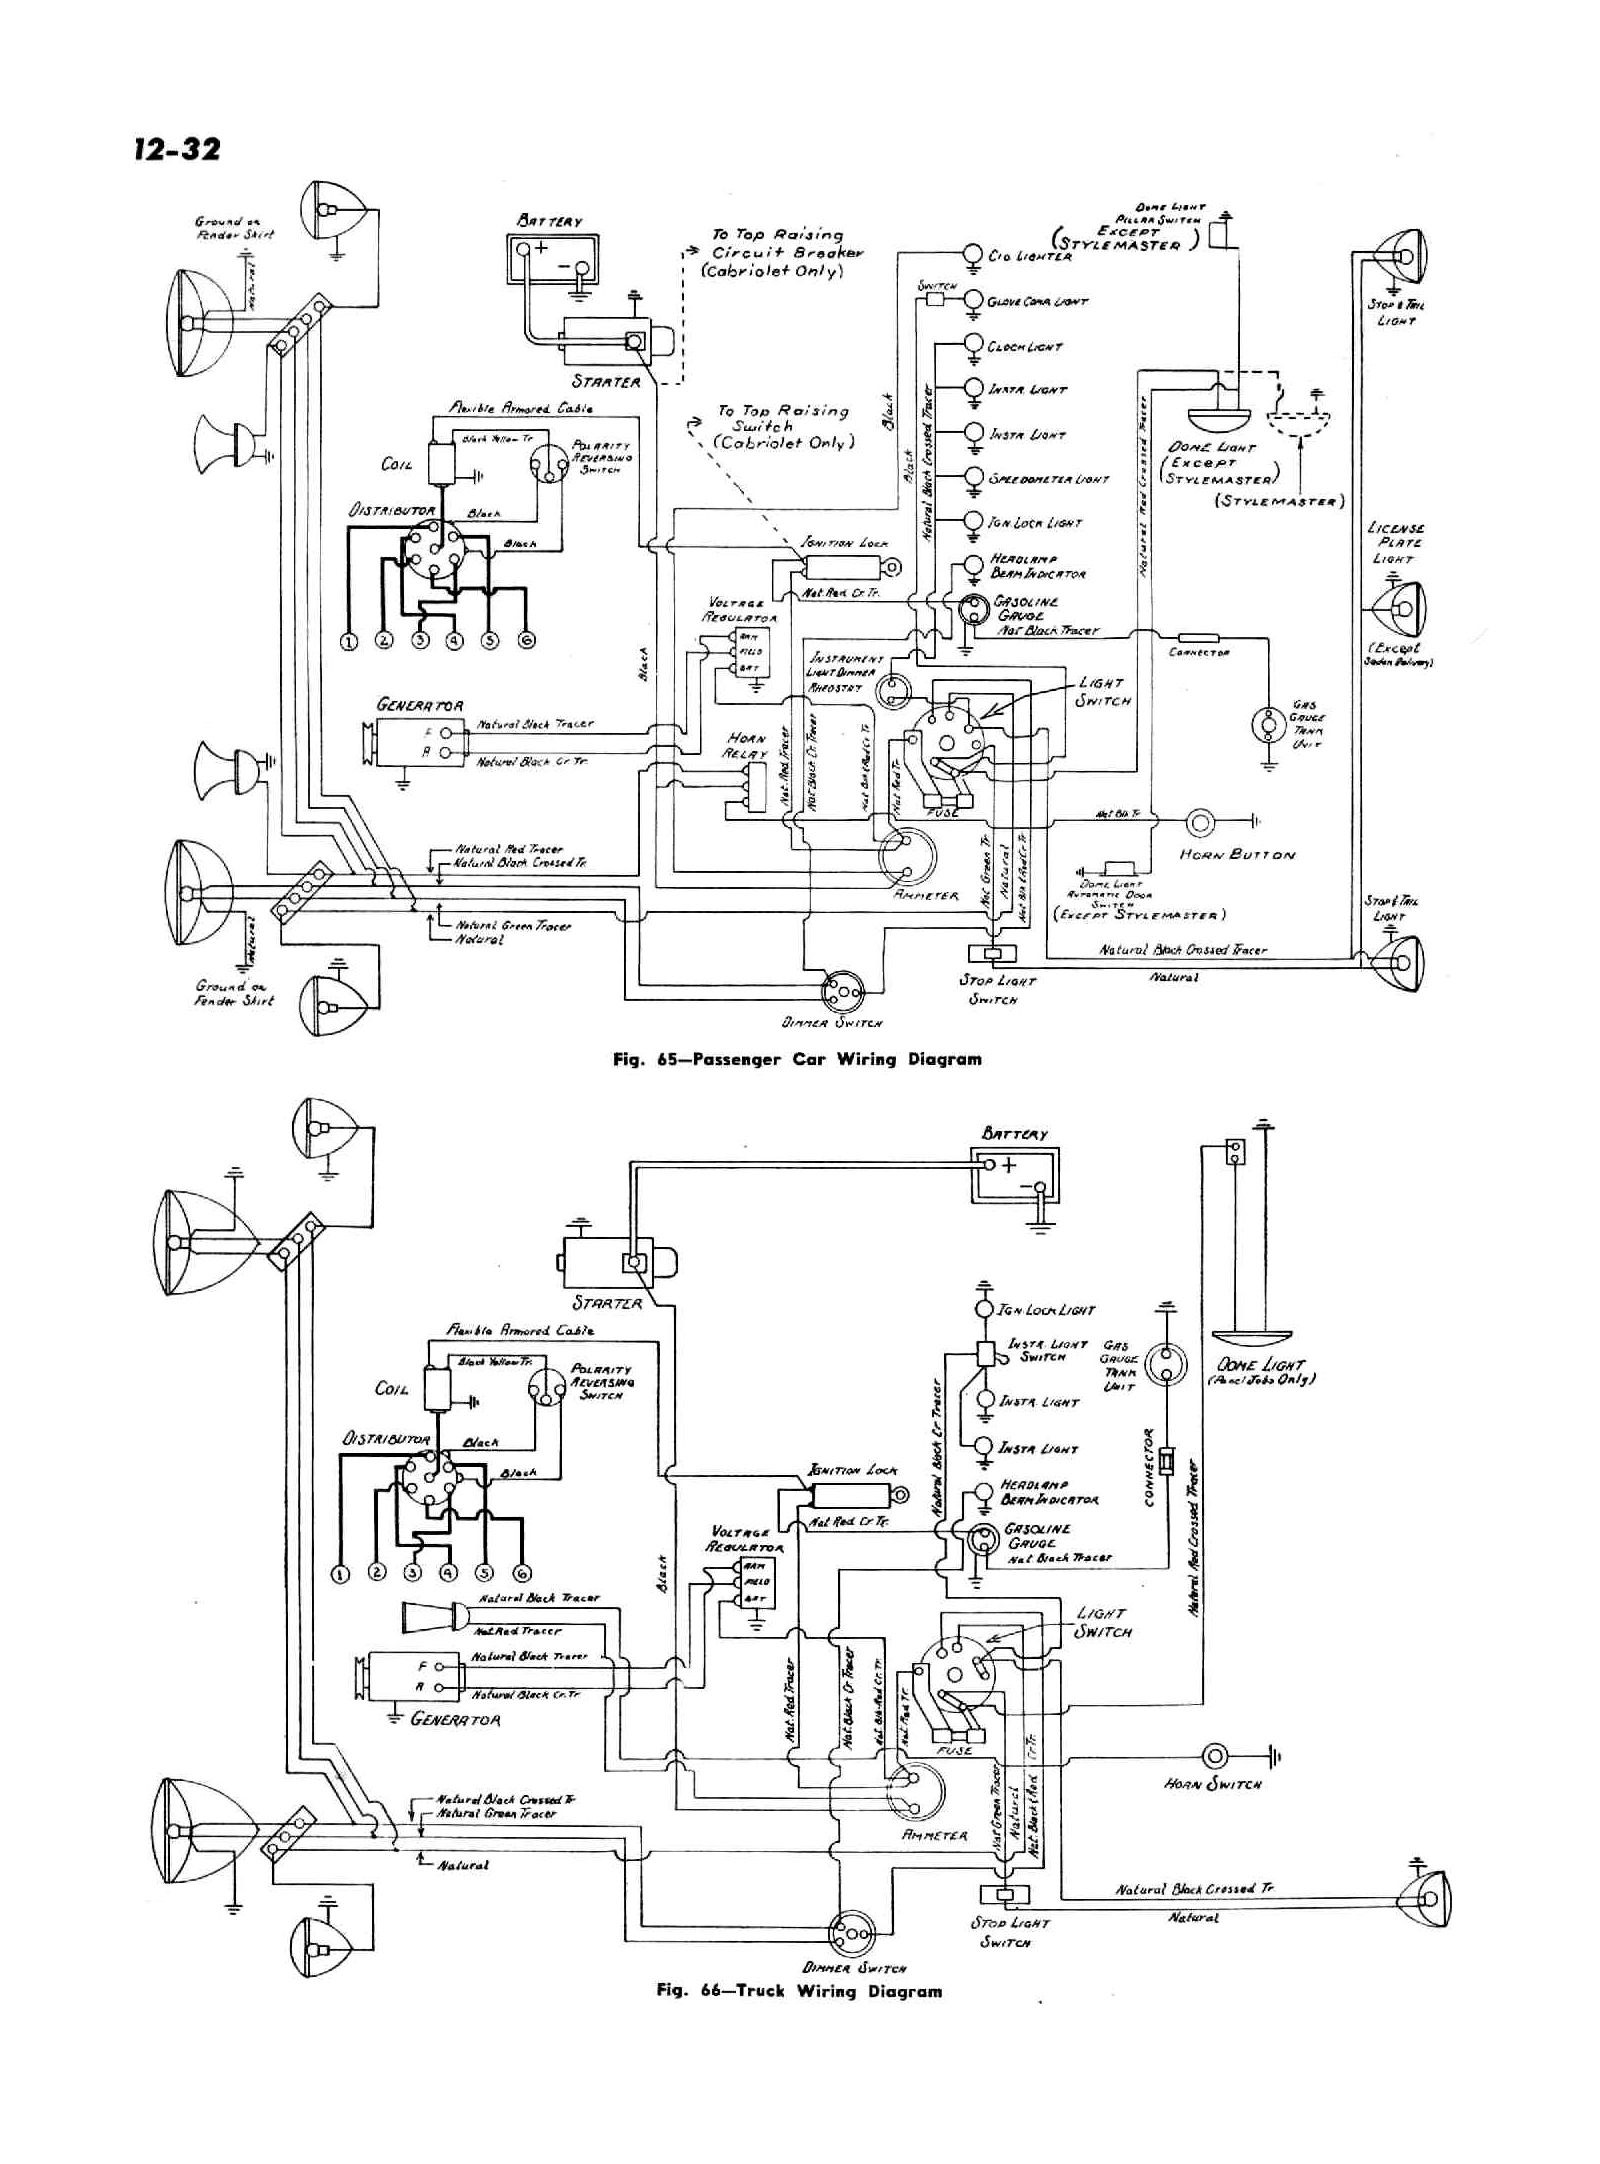 68 ford fuse box diagram 68 nova fuse box diagram - auto electrical wiring diagram 68 nova fuse box diagram